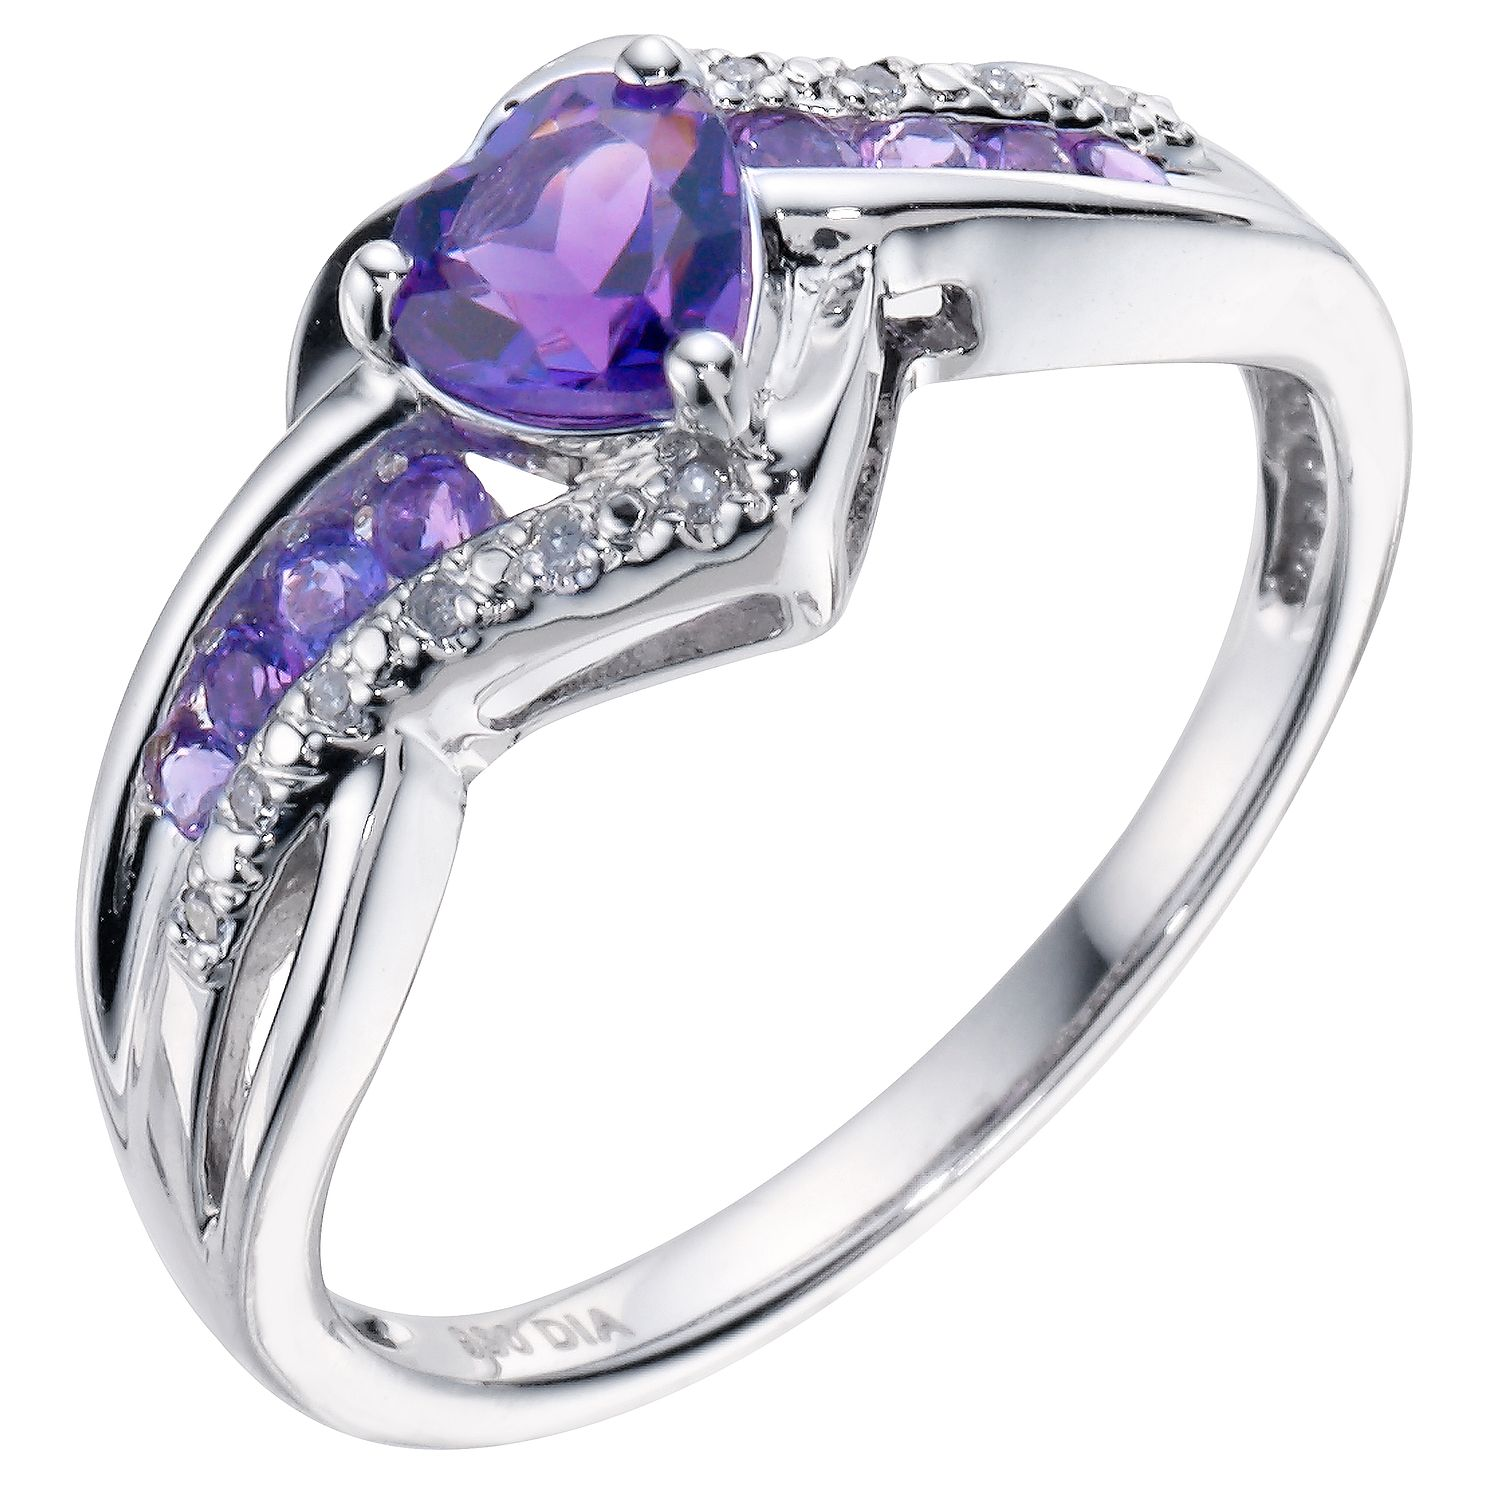 amethyst rings en mv diamonds with diamond white jar cut zoom ring zm jared amp to hover gold cushion jaredstore